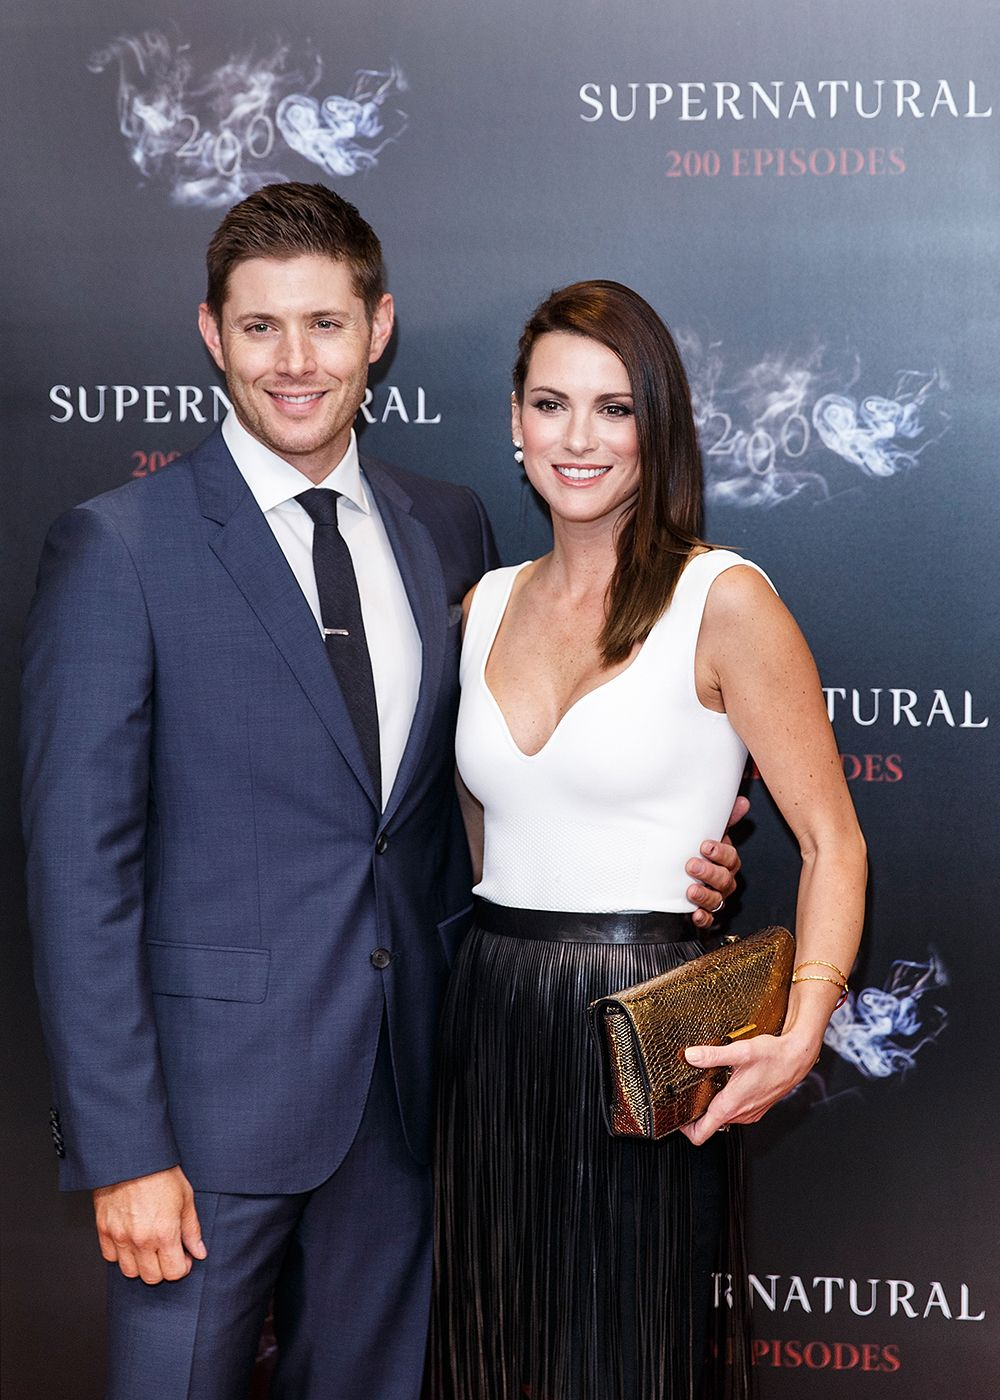 30 Surprising Things About the Making of 'Supernatural'